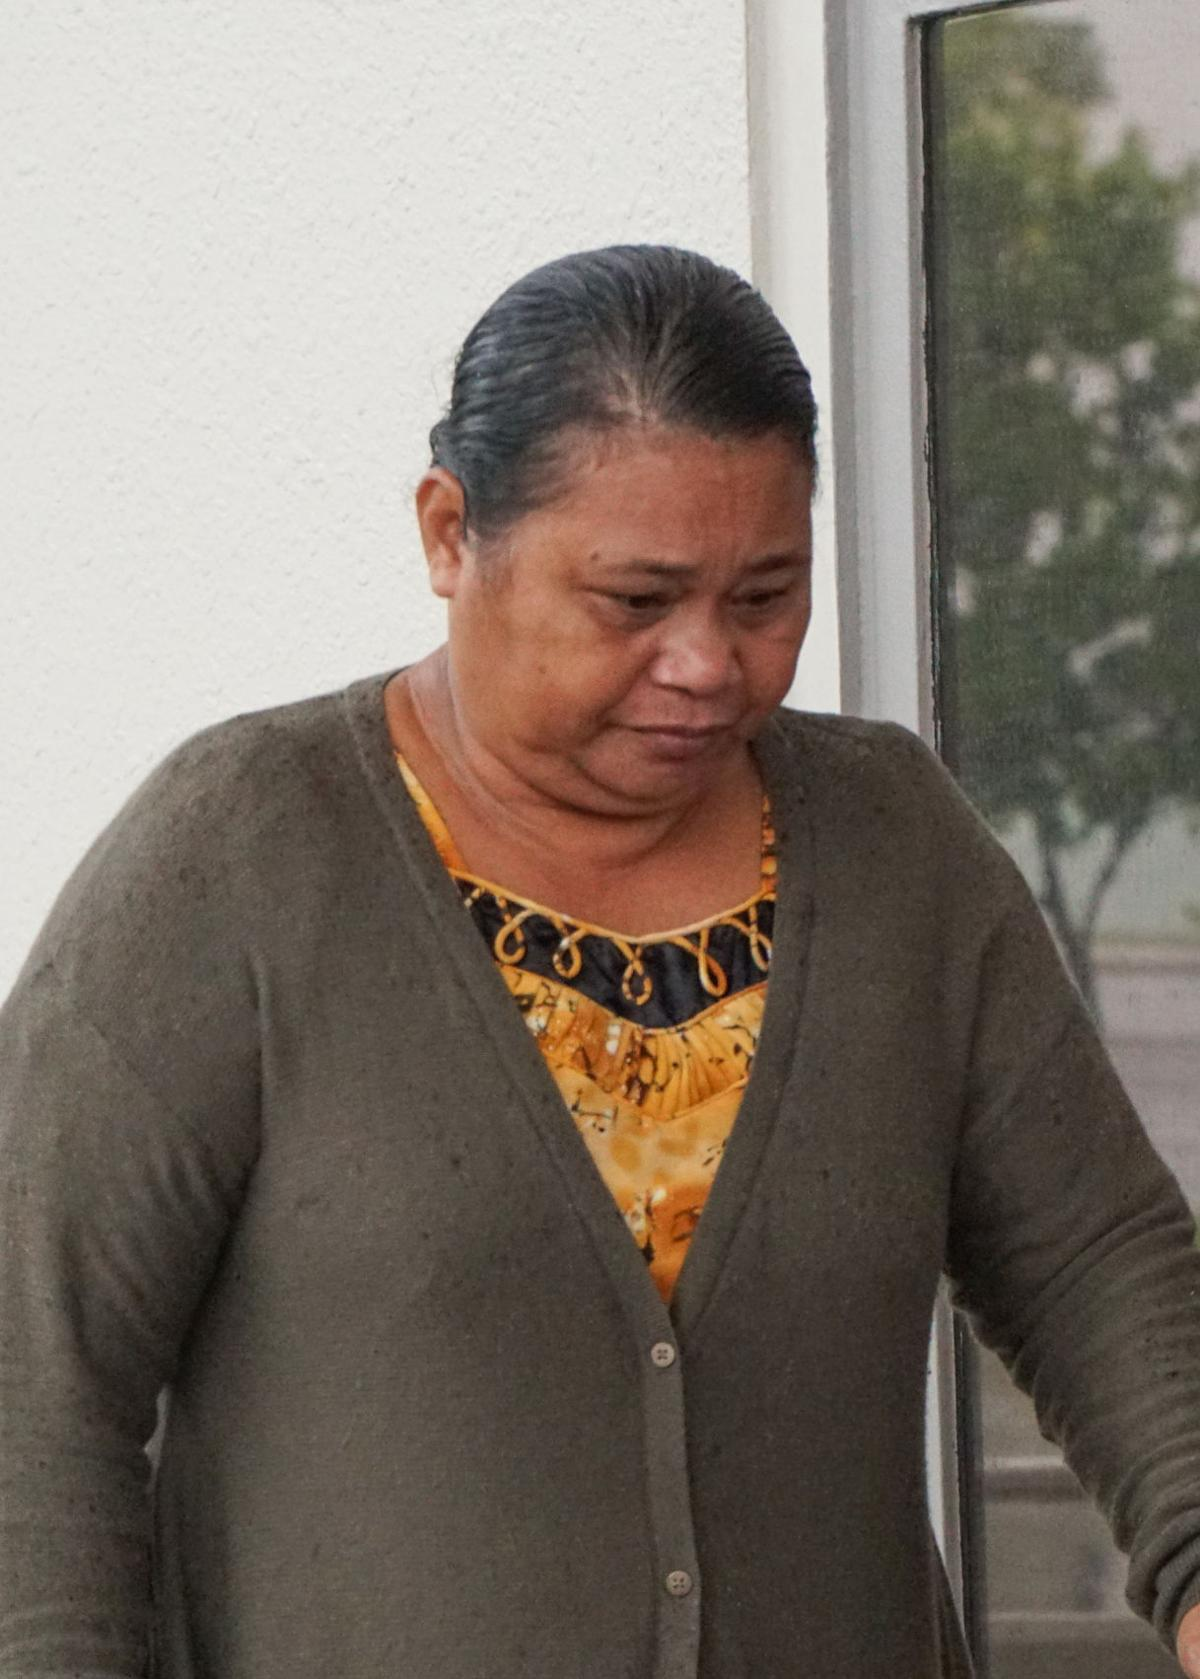 Trial delayed in another food stamp fraud case